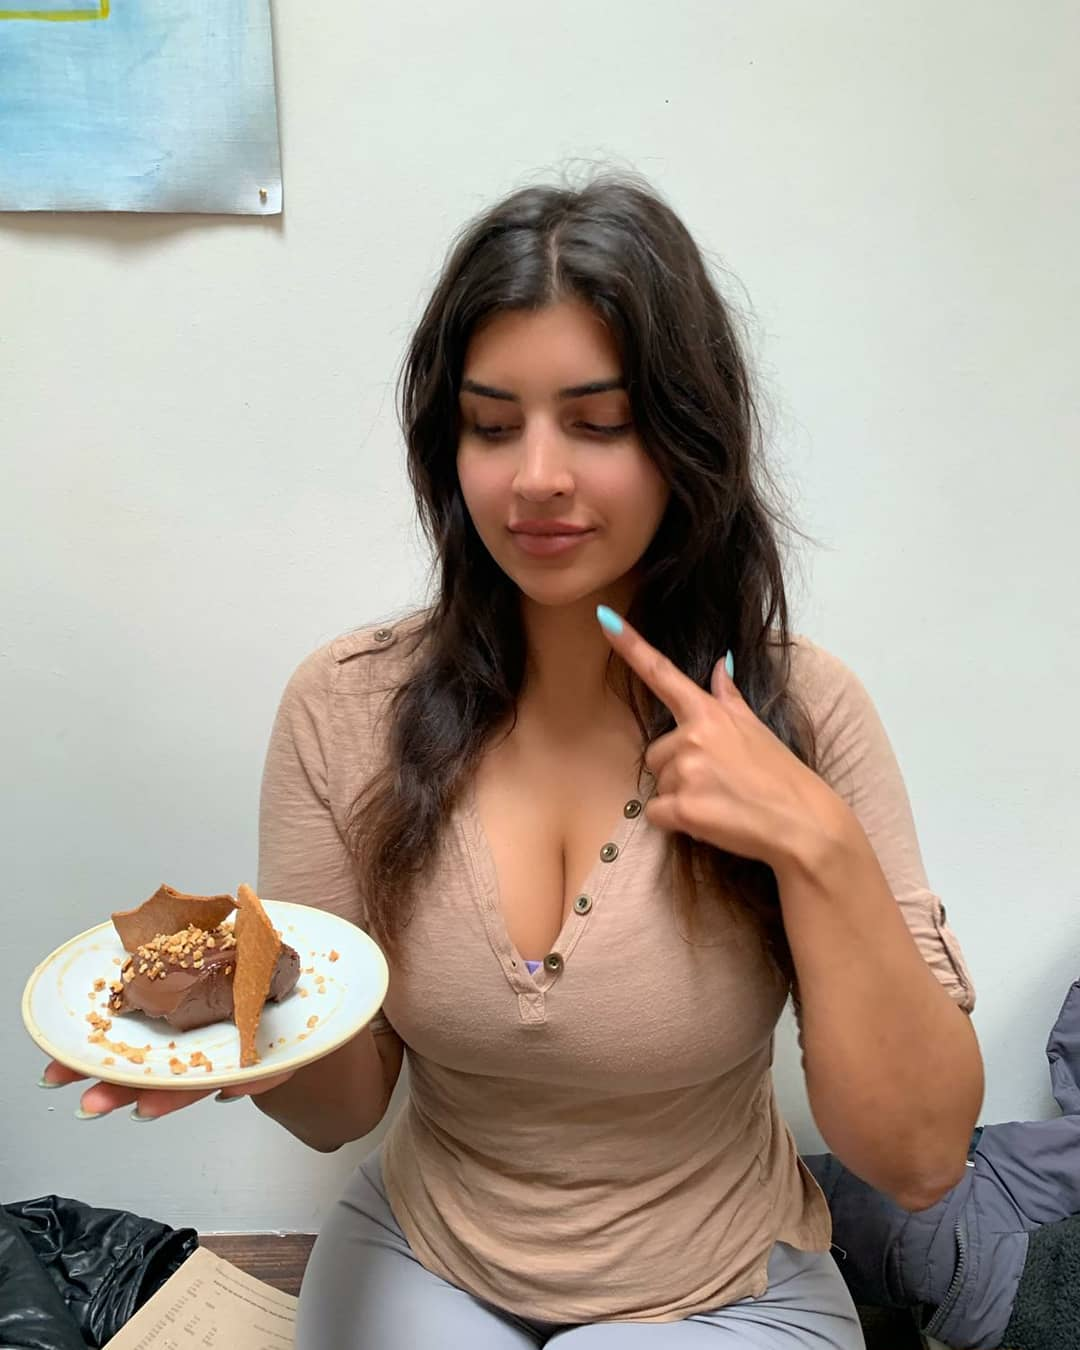 Iraqi Beauty Chef Huge Boobs Pictures